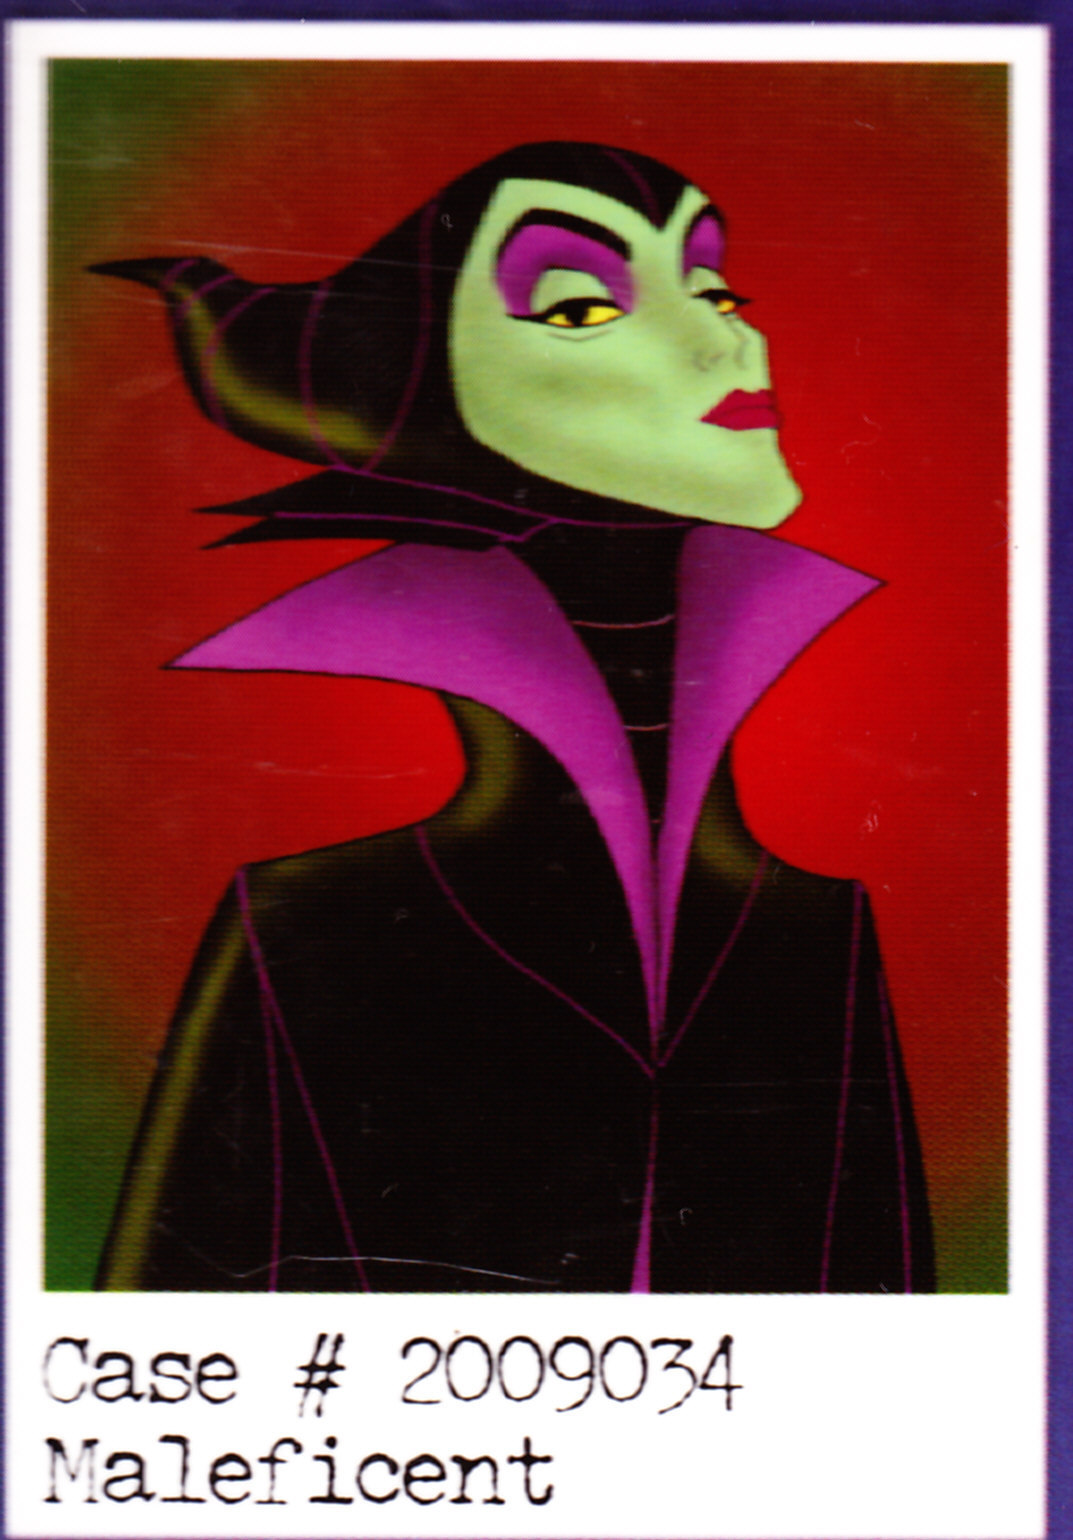 maleficent 's ID